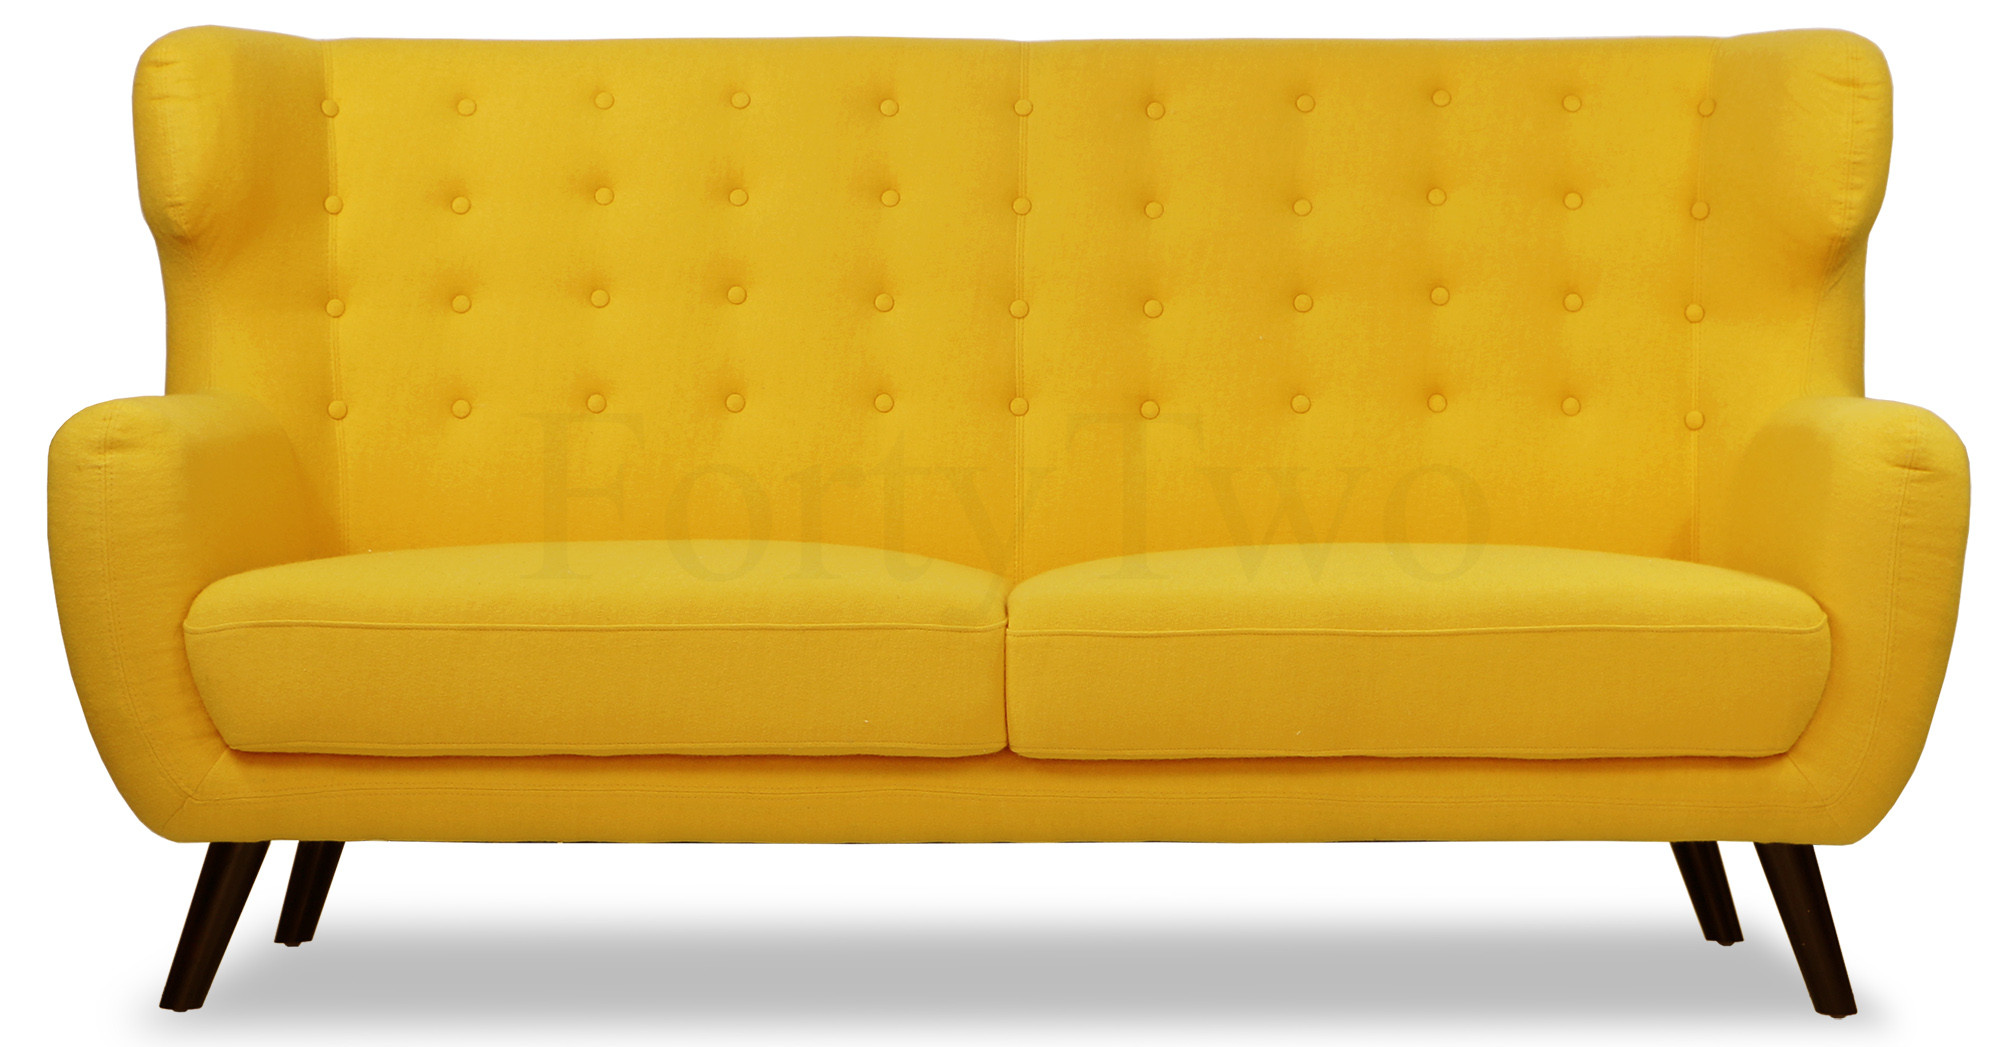 Replica WingBack Designer 3 Seater Sofa in Yellow Furniture& Home Décor FortyTwo